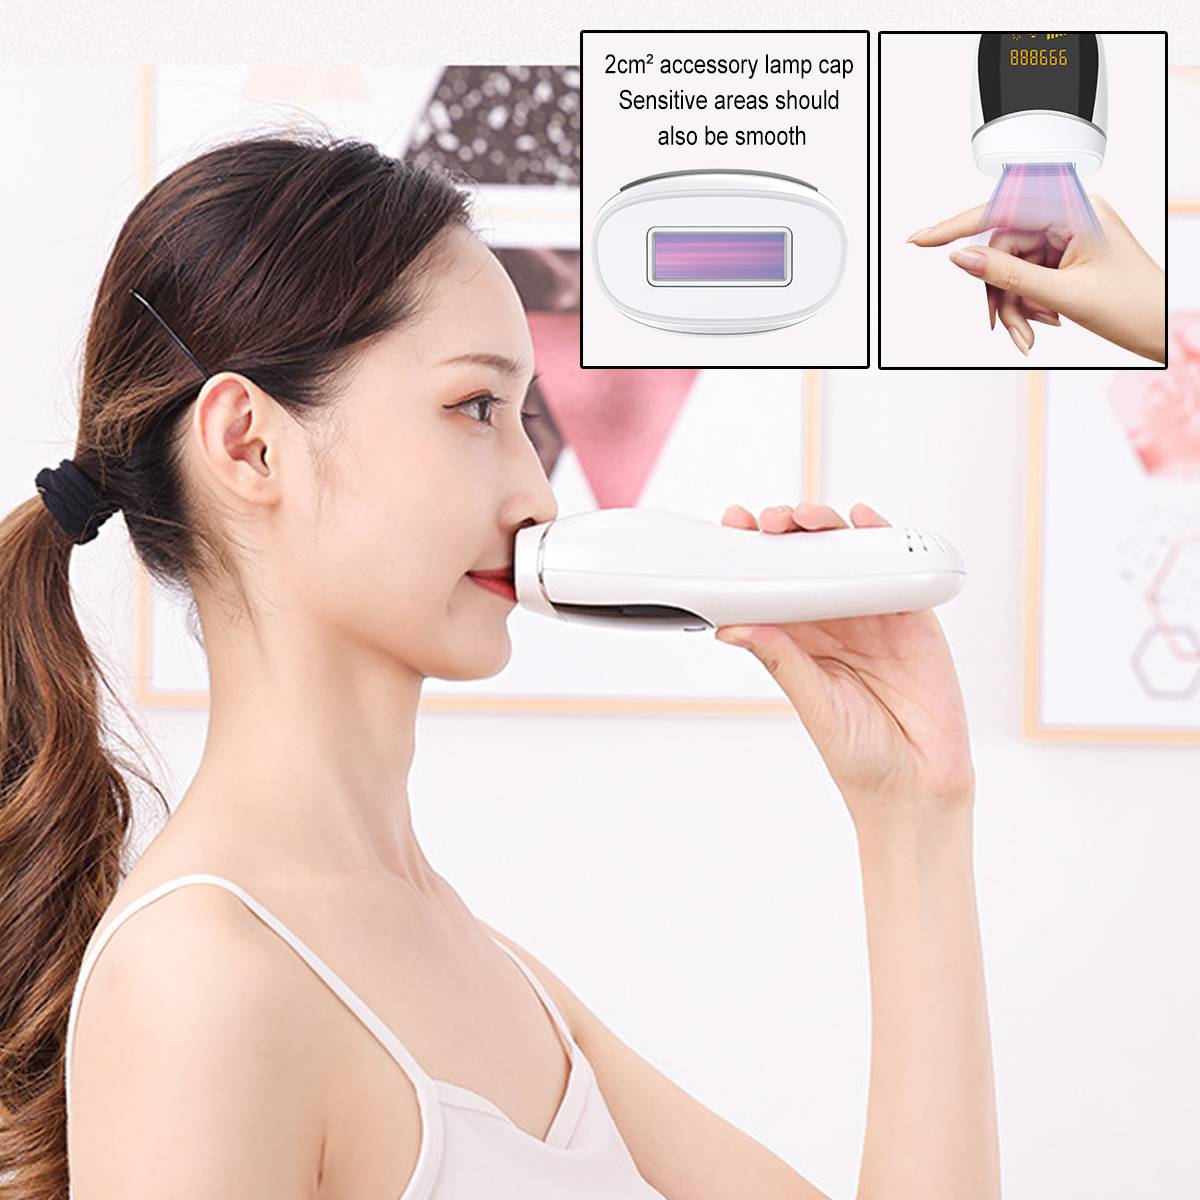 2 In 1 990000 Flash IPL Laser Hair Removal Machine Photon Permanent Device  Facial Body Hair Trimmer Epilator With LCD Display enlarge